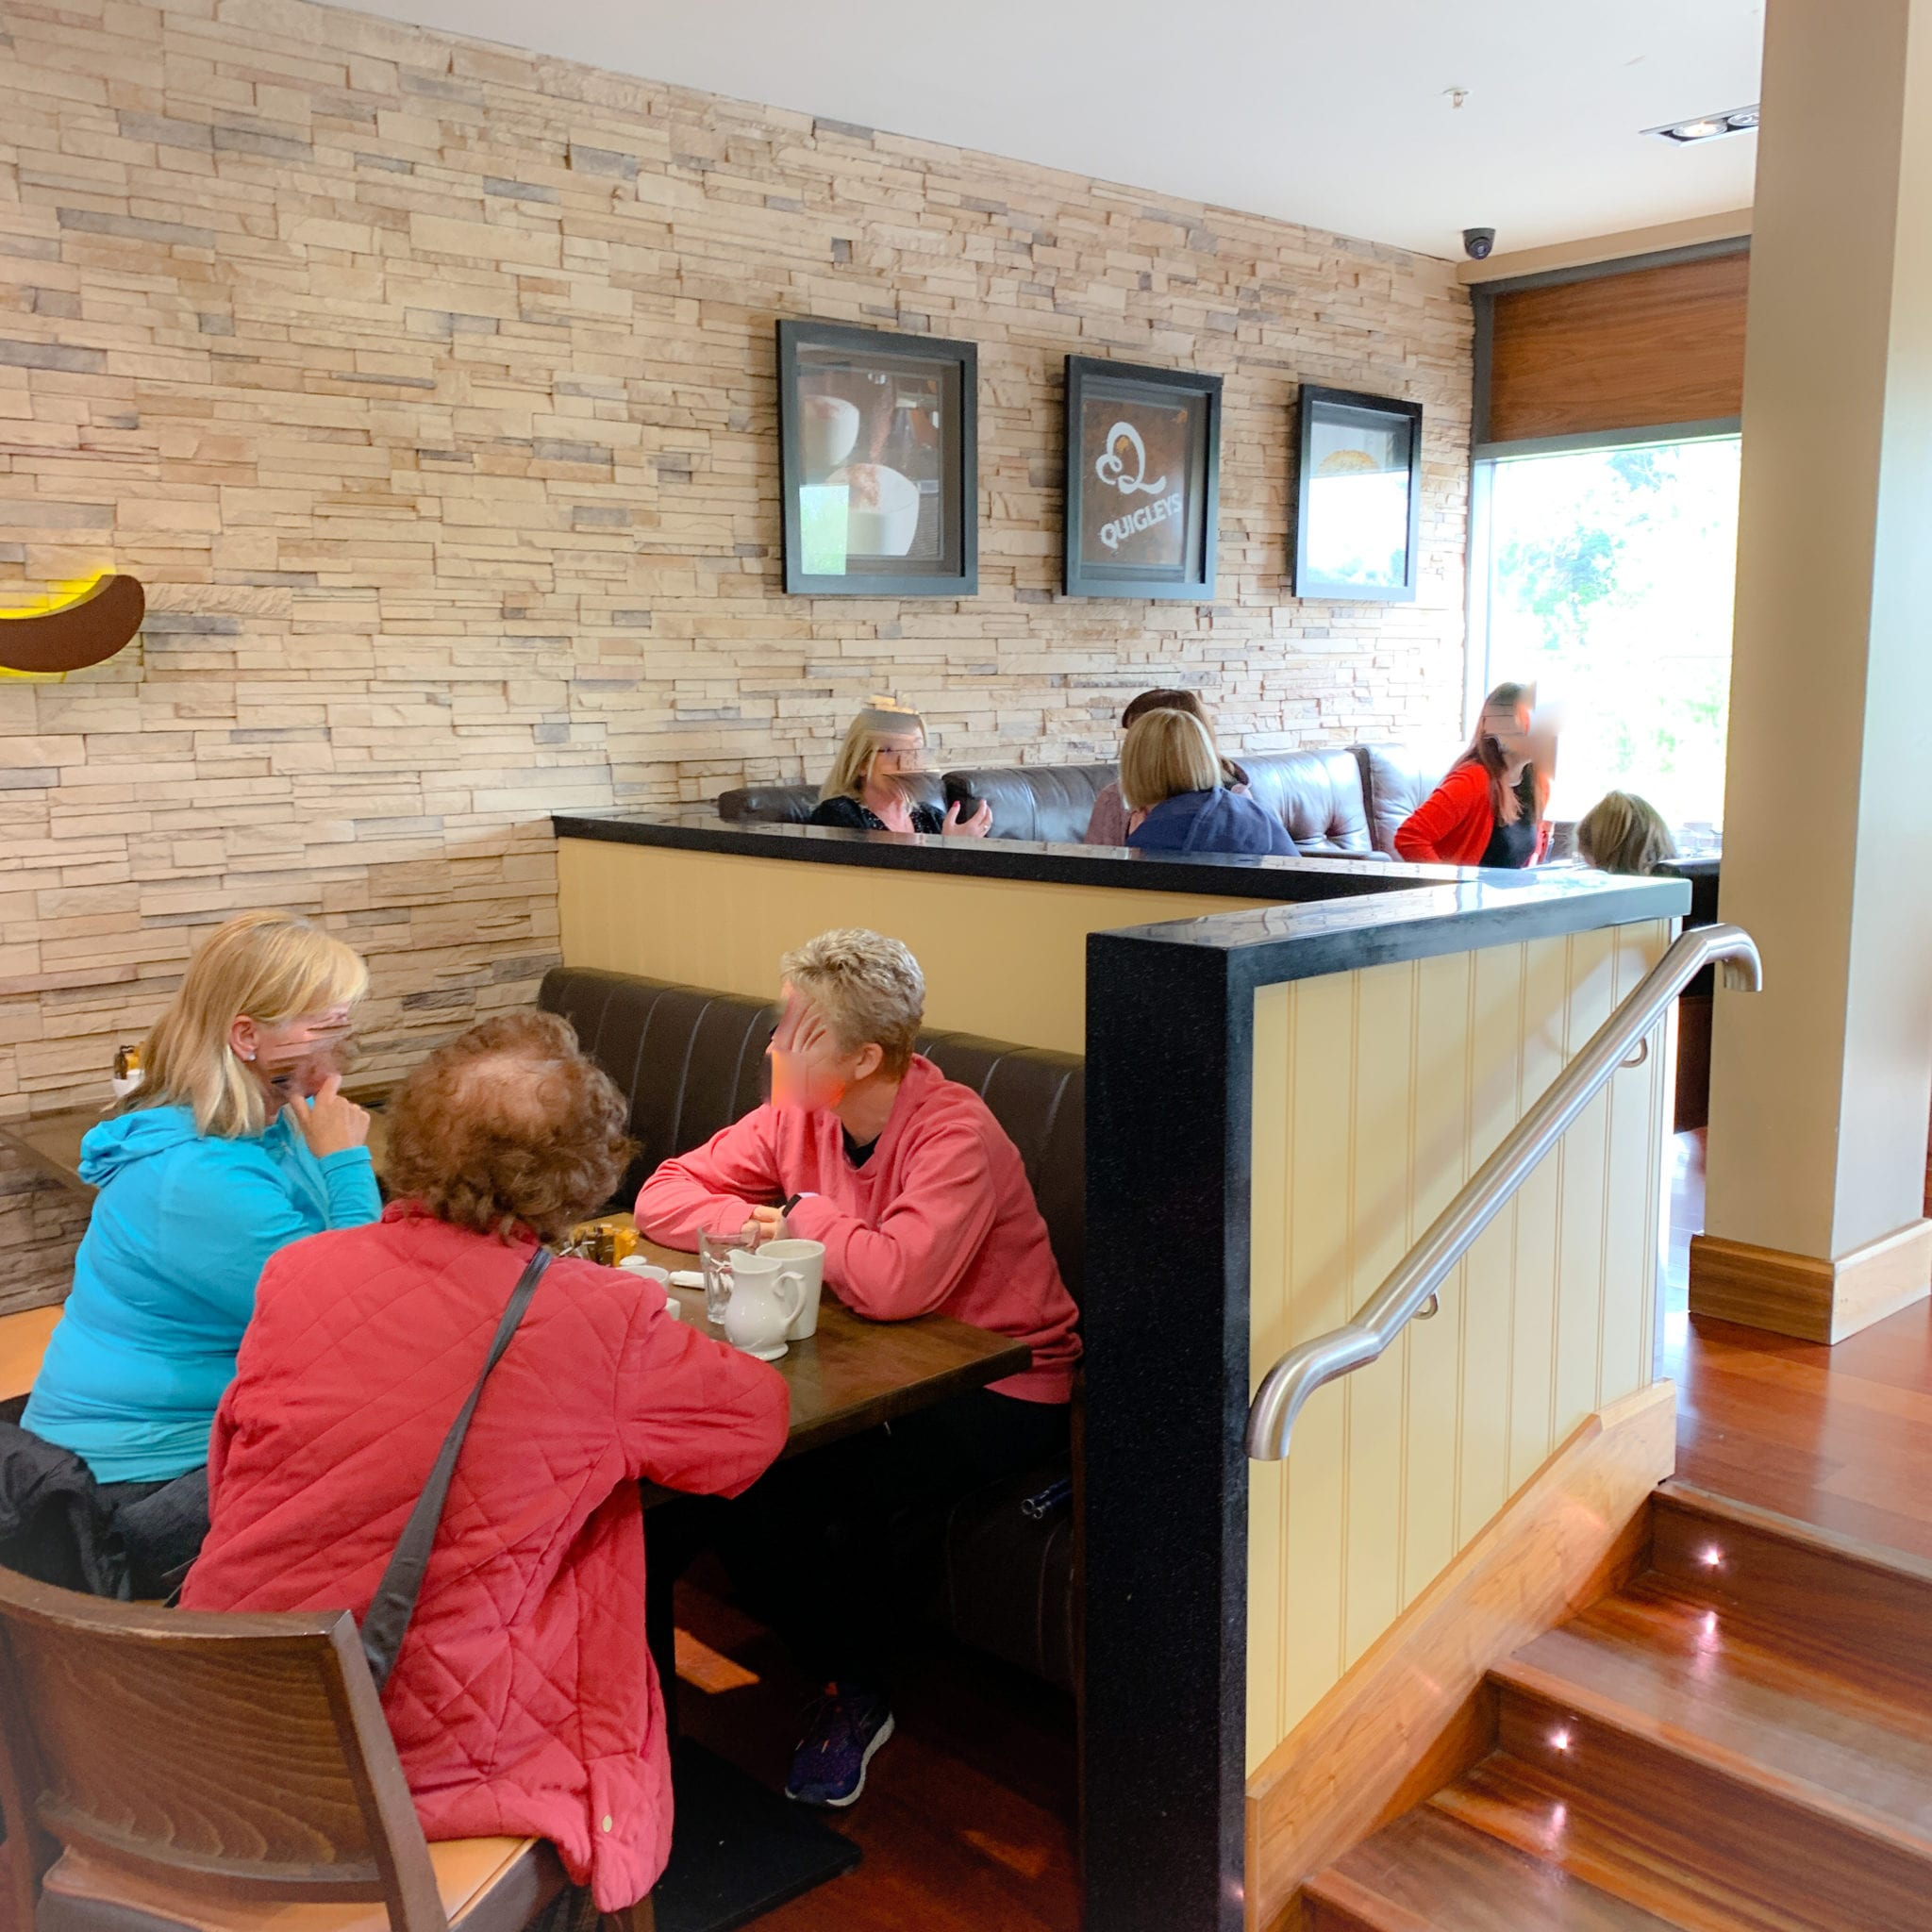 Customers talking while enjoying coffee in Quigleys cafe Thurles